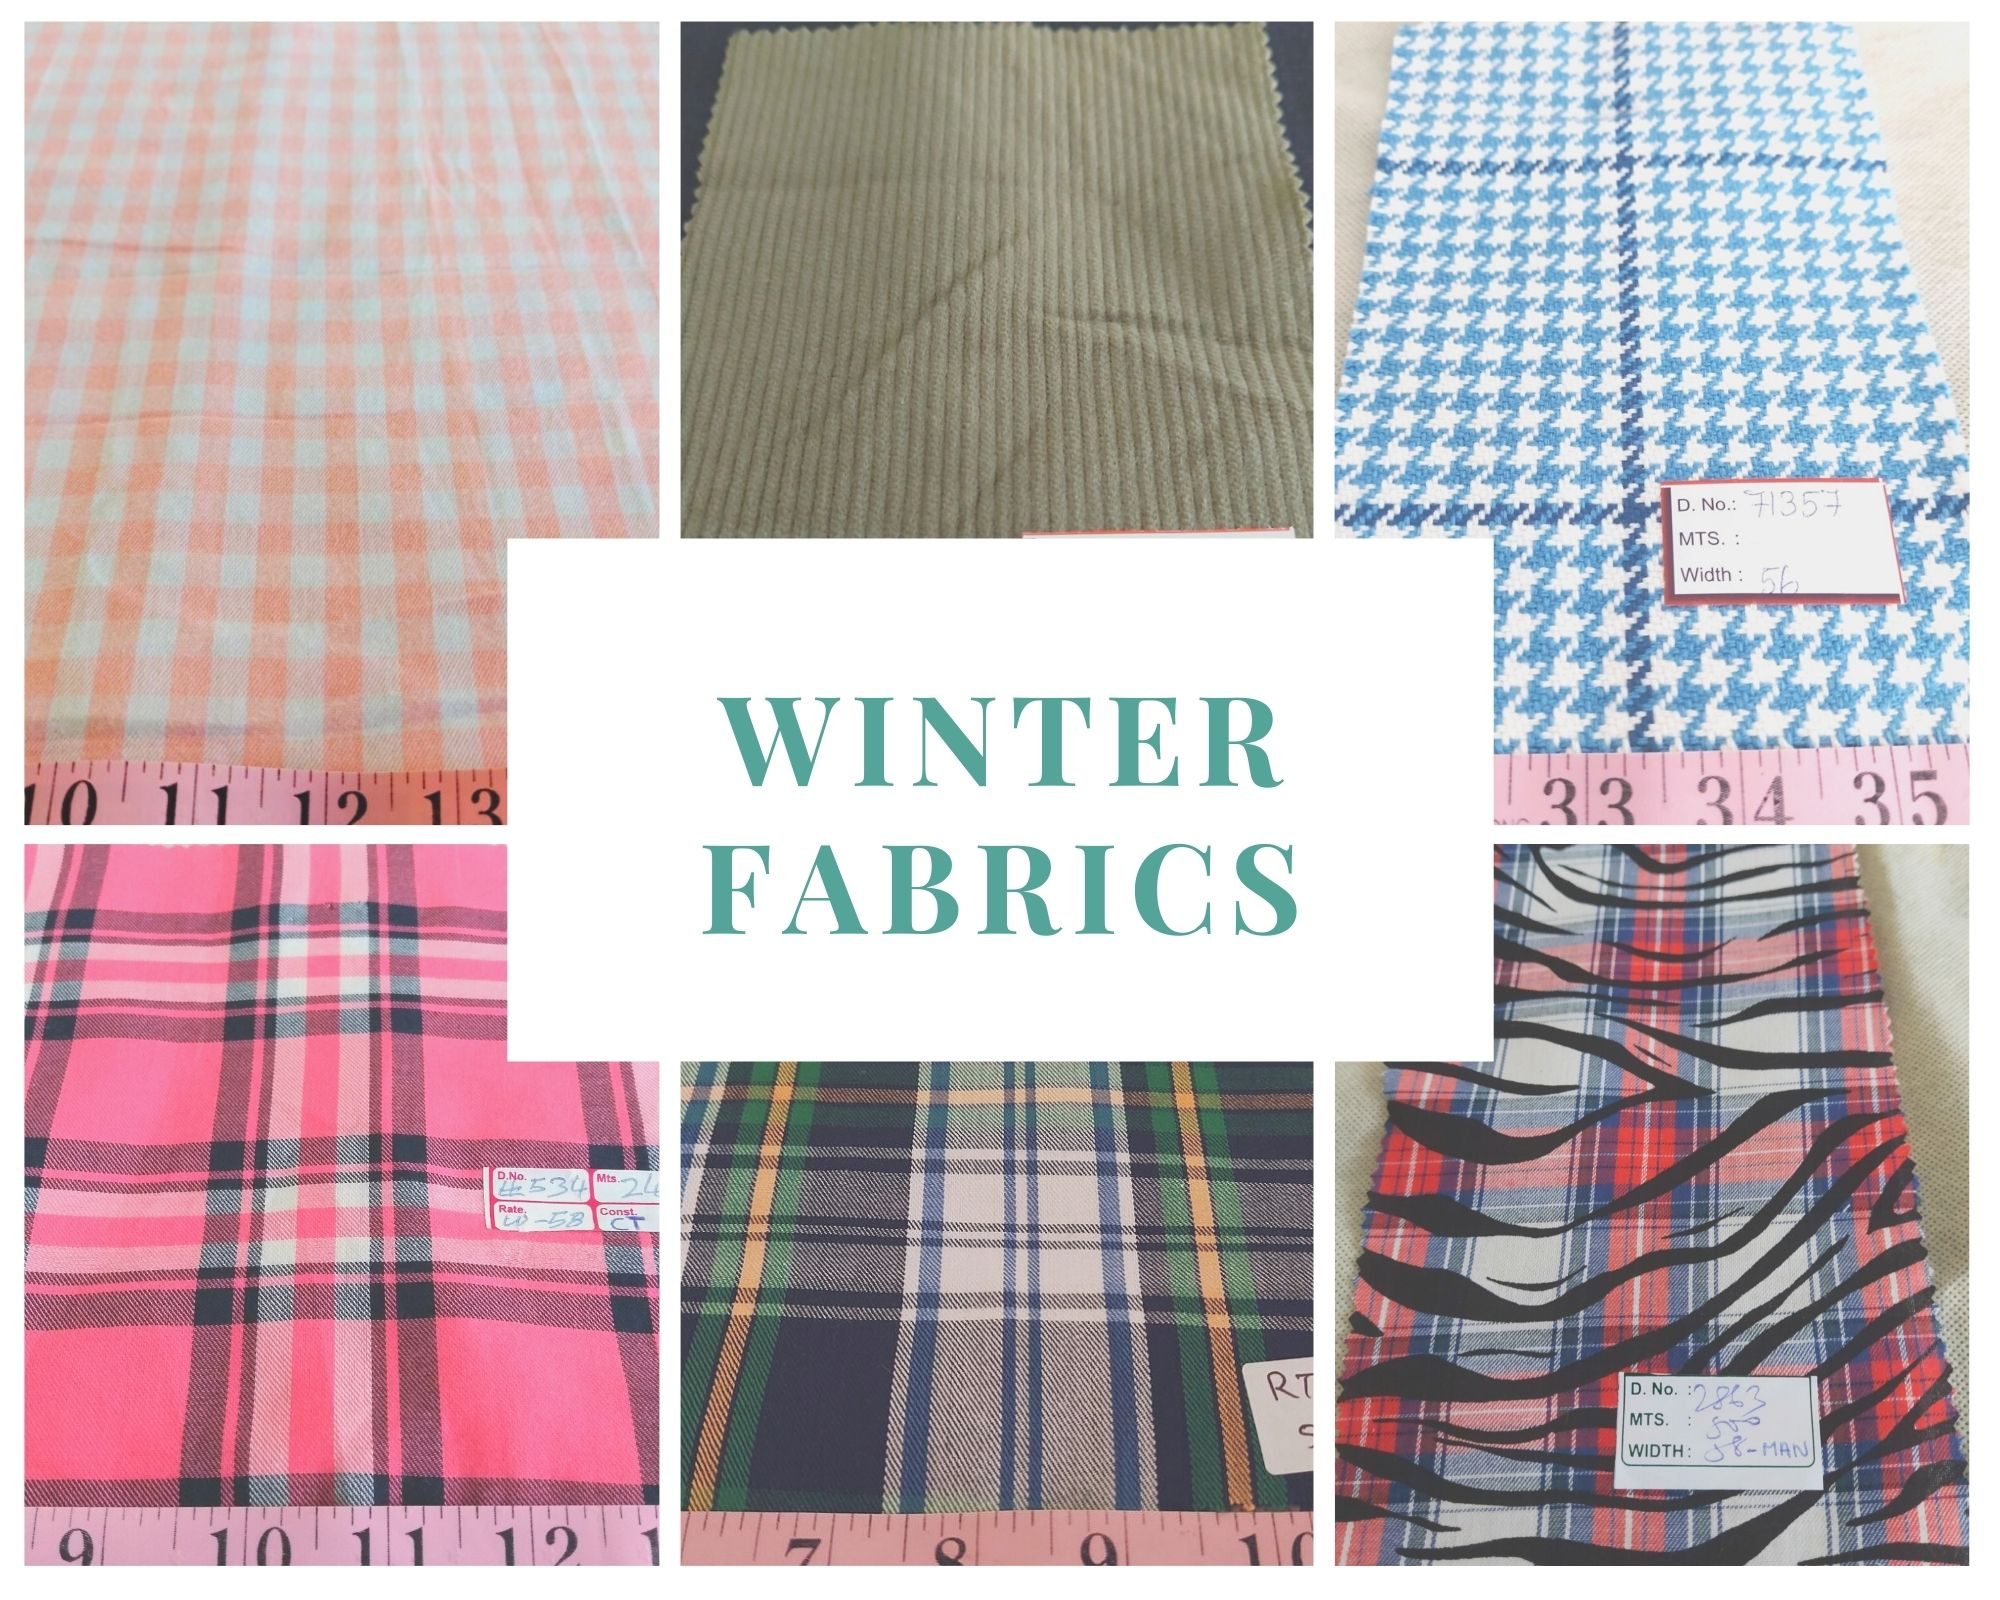 Fall fashion / winter fashion, with winter fabrics like flannel plaid, tartan and flannel madras, for flannel shirts, jackets & coats, and caps.